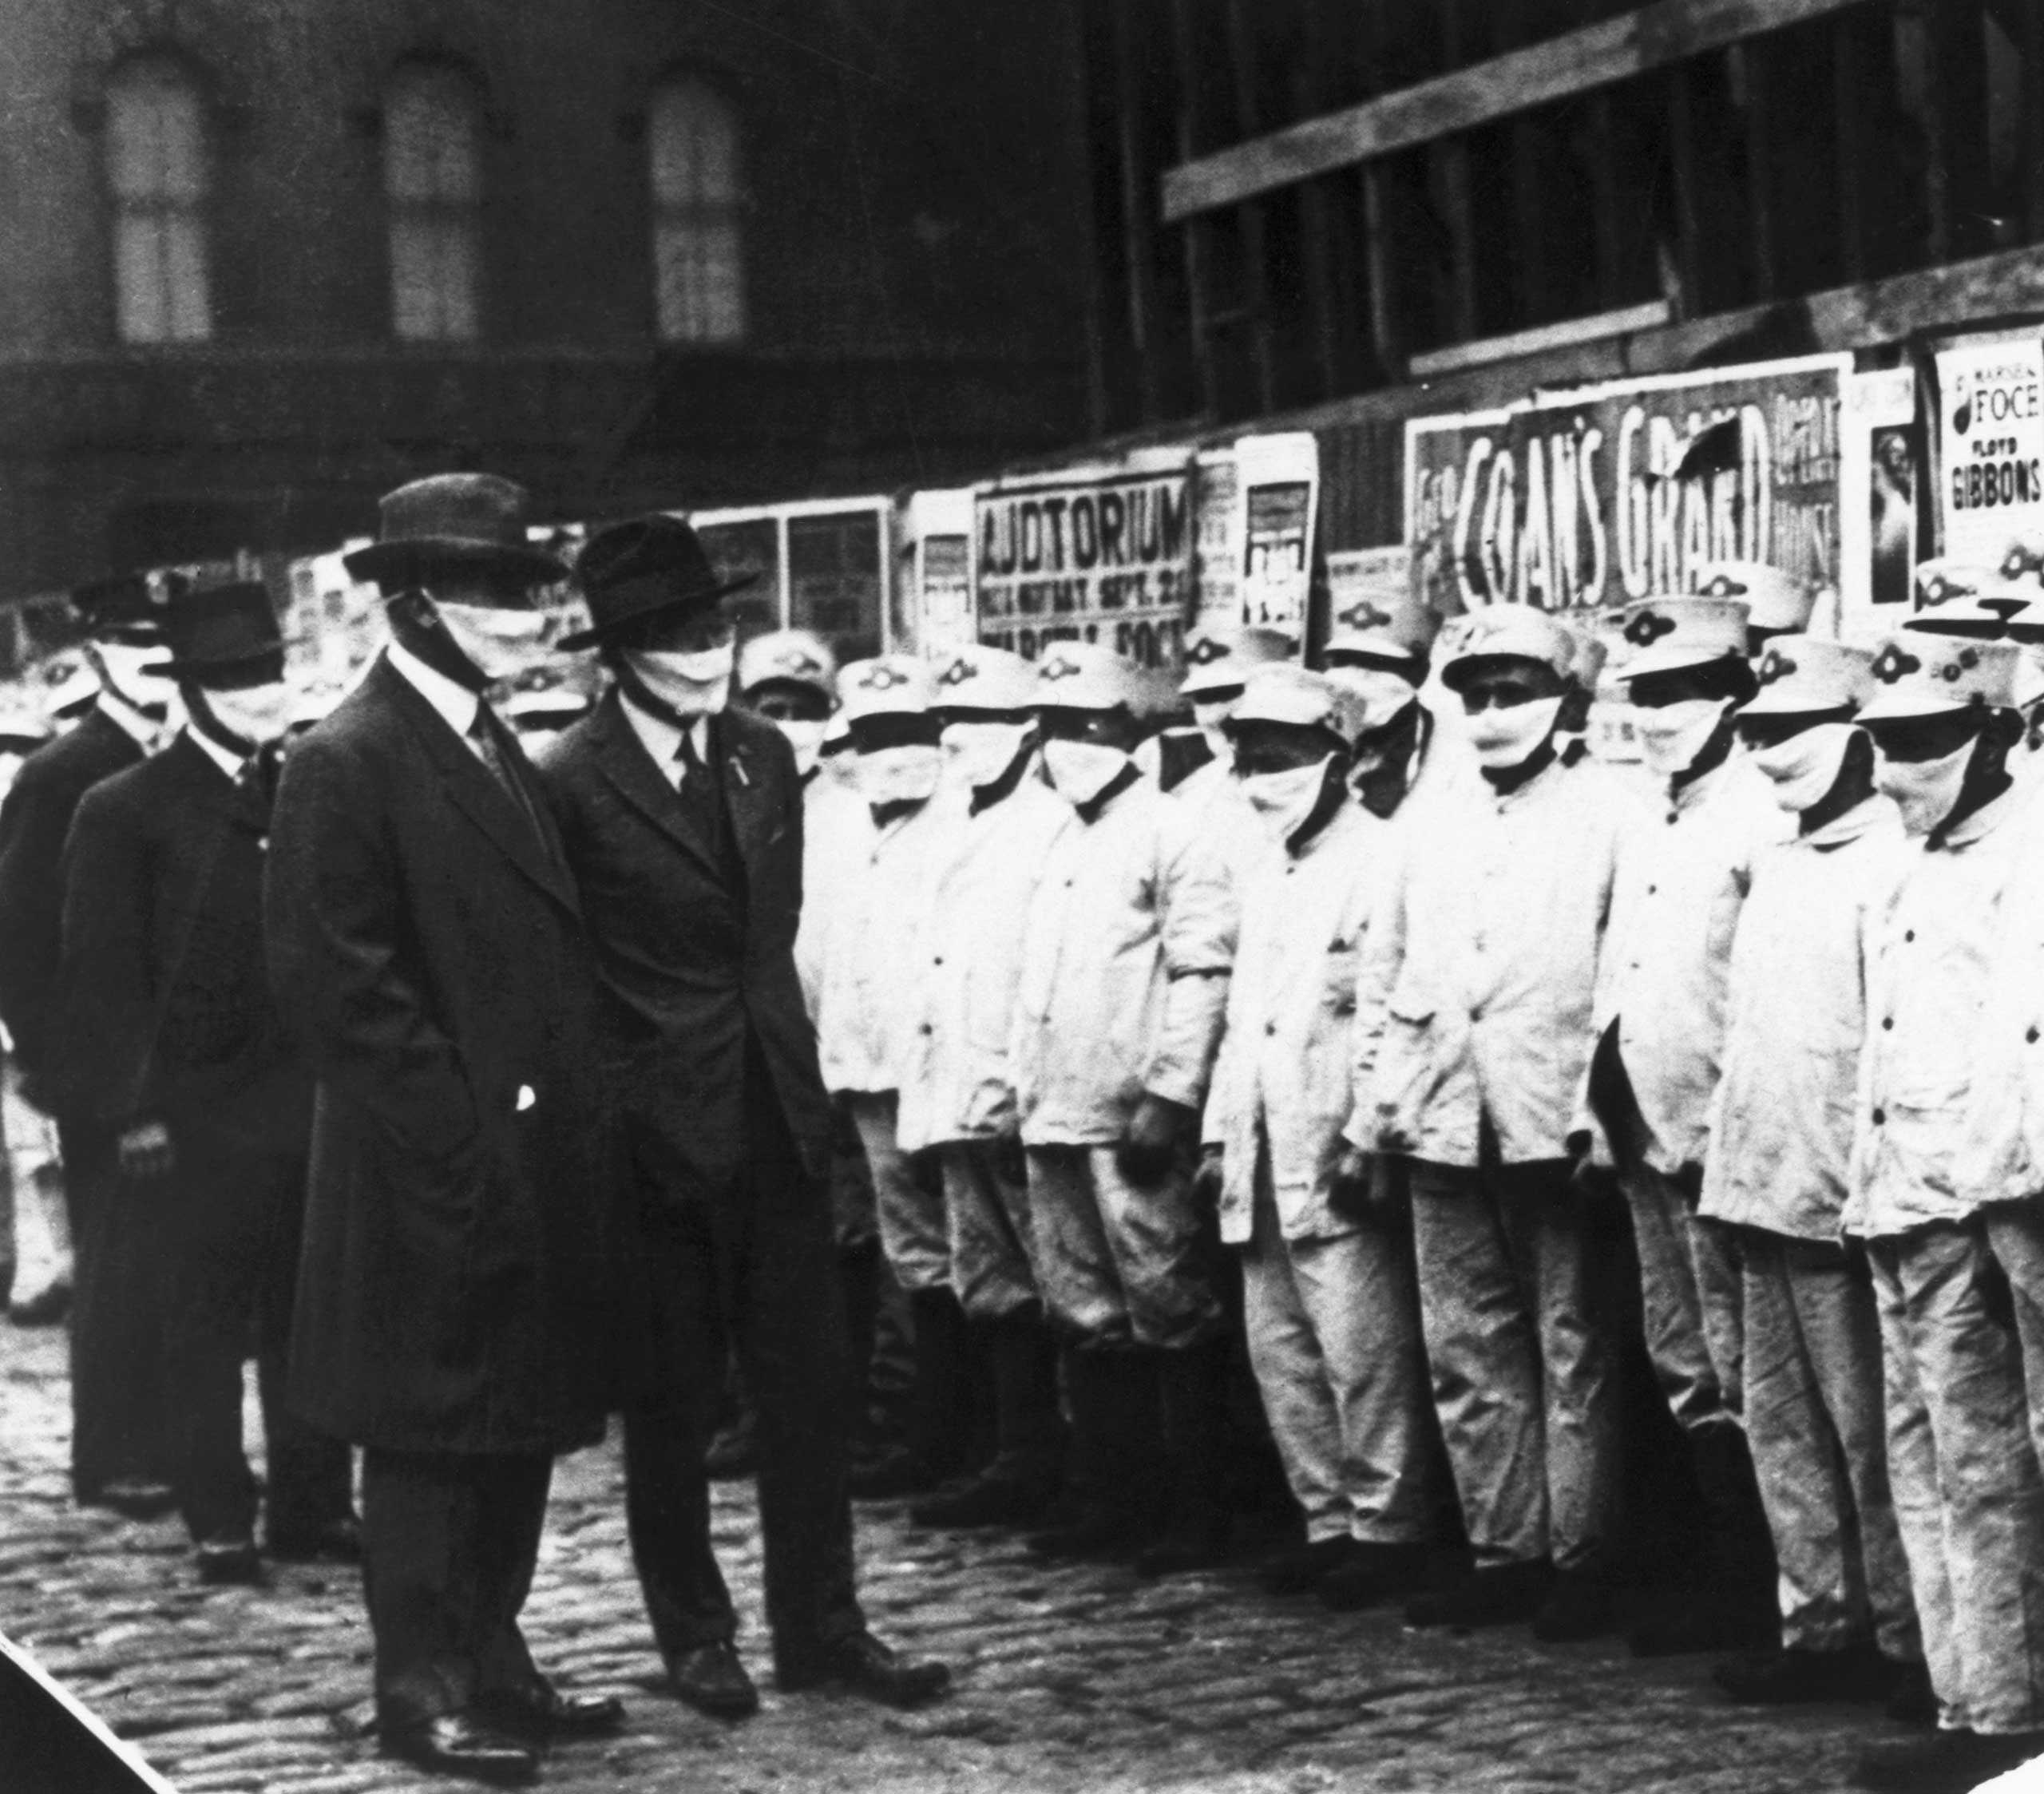 Inspecting Chicago street cleaners for influenza, 1918.